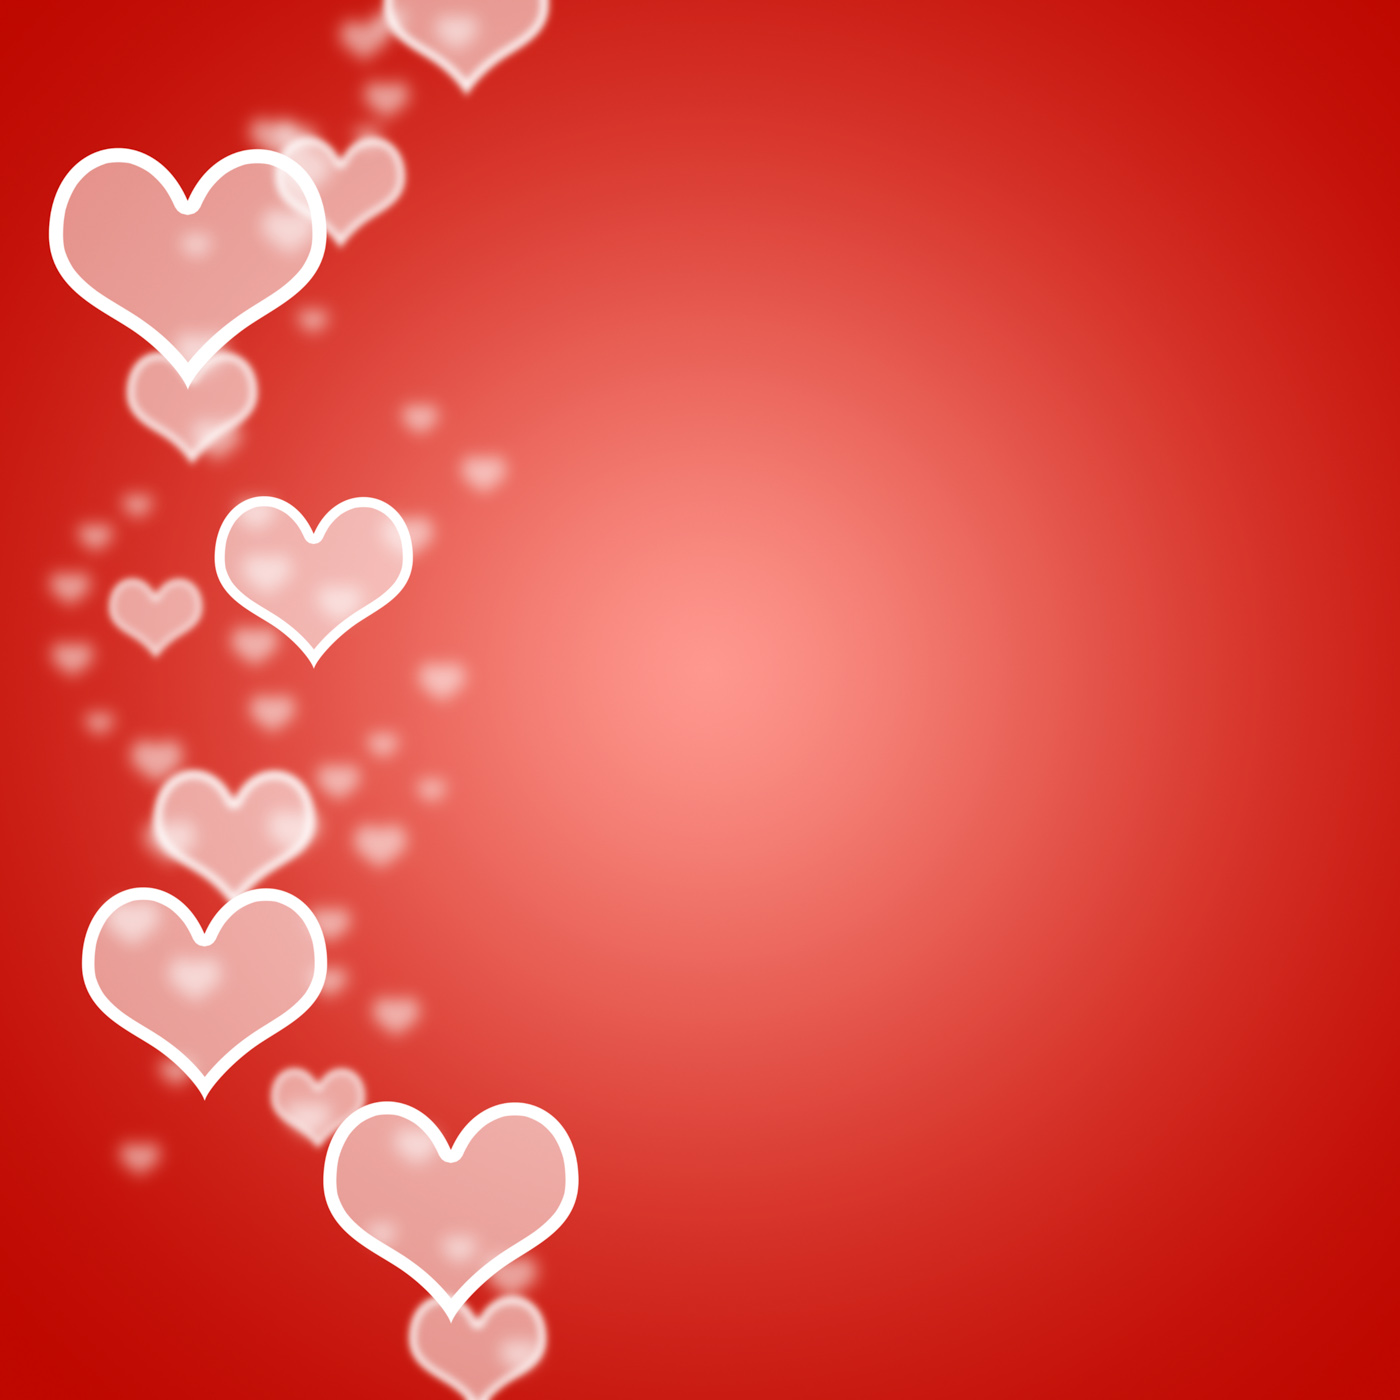 Showing Love: Free Photo: Red Hearts Bokeh Background With Blank